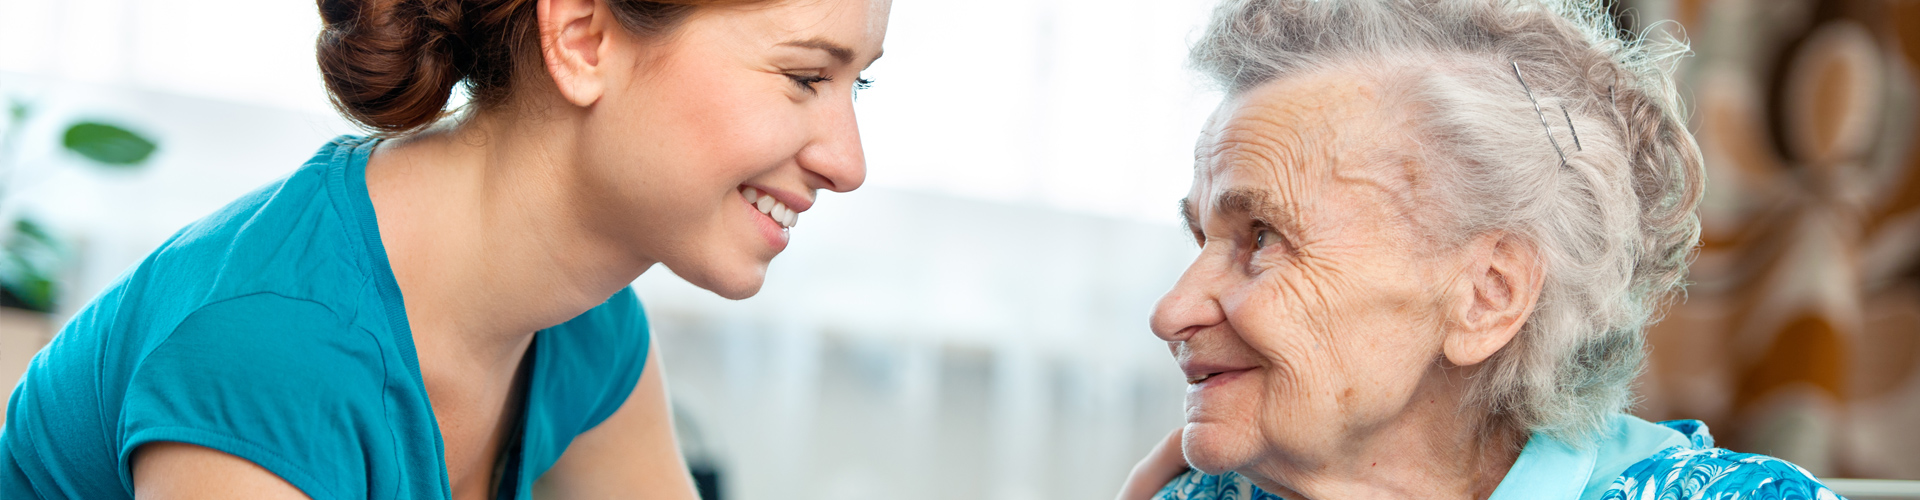 8-Things-to-Consider-When-Selecting-a-Caregiver